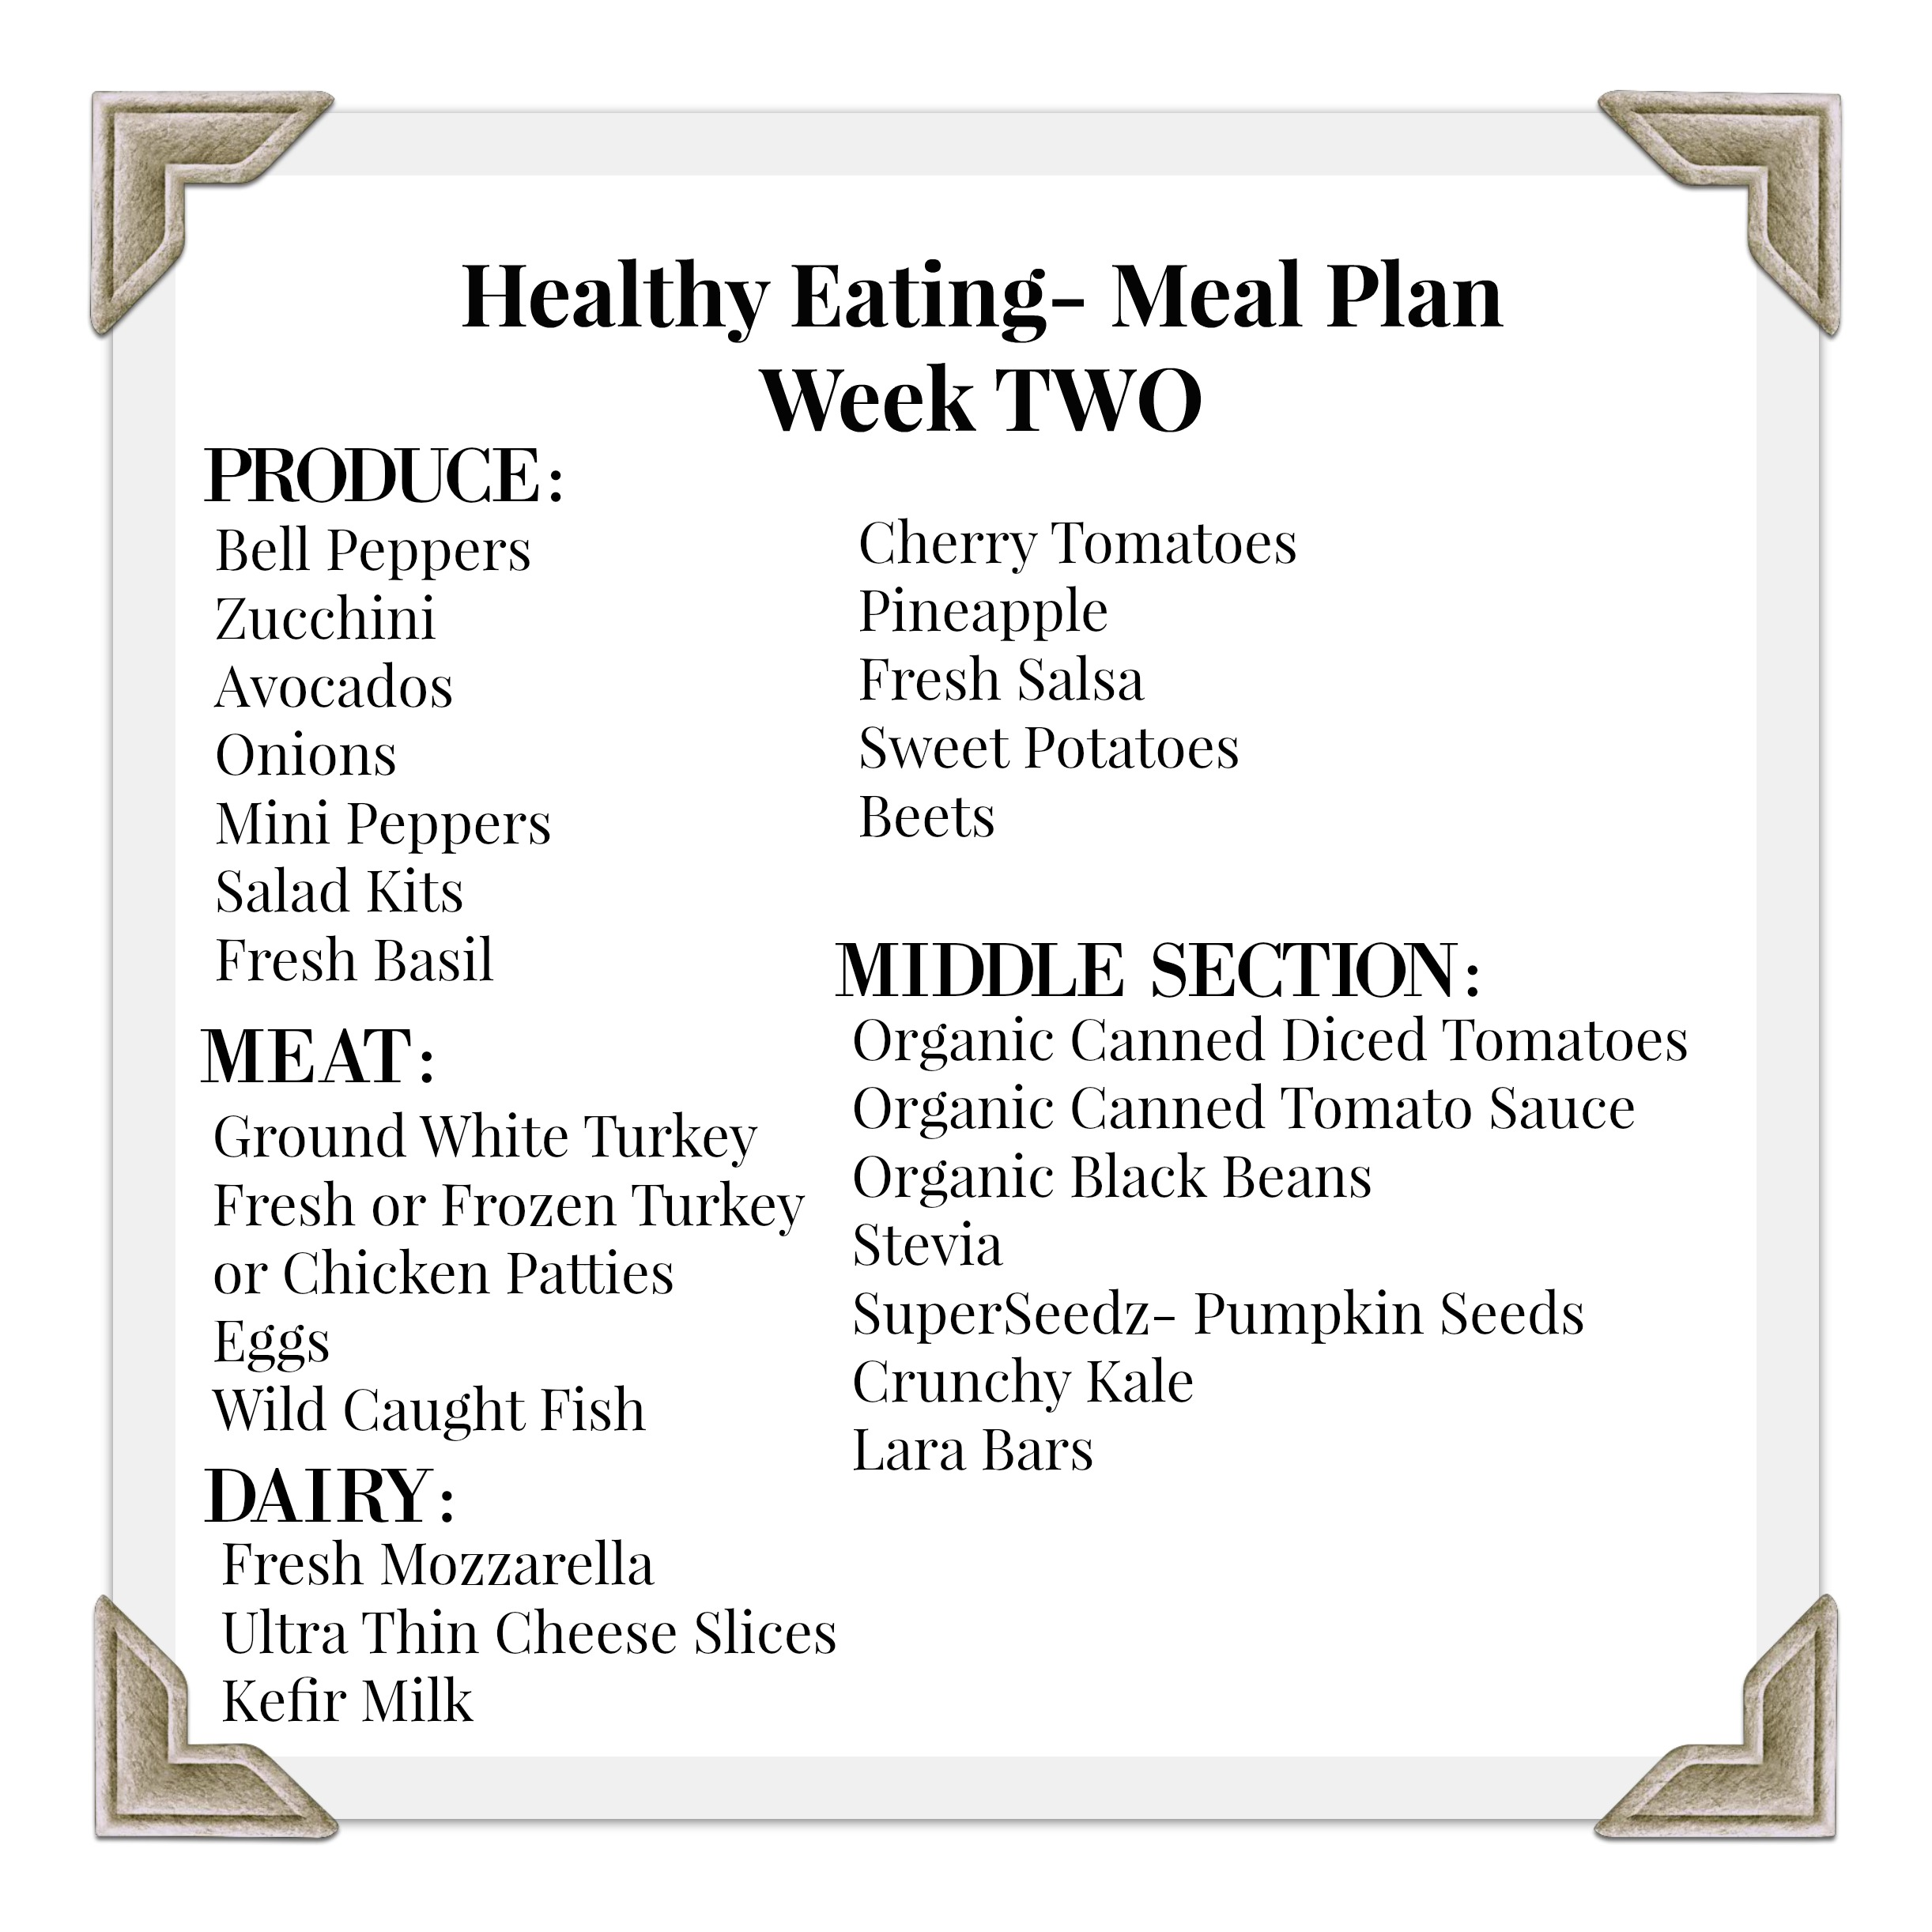 Meal Planning Week Two